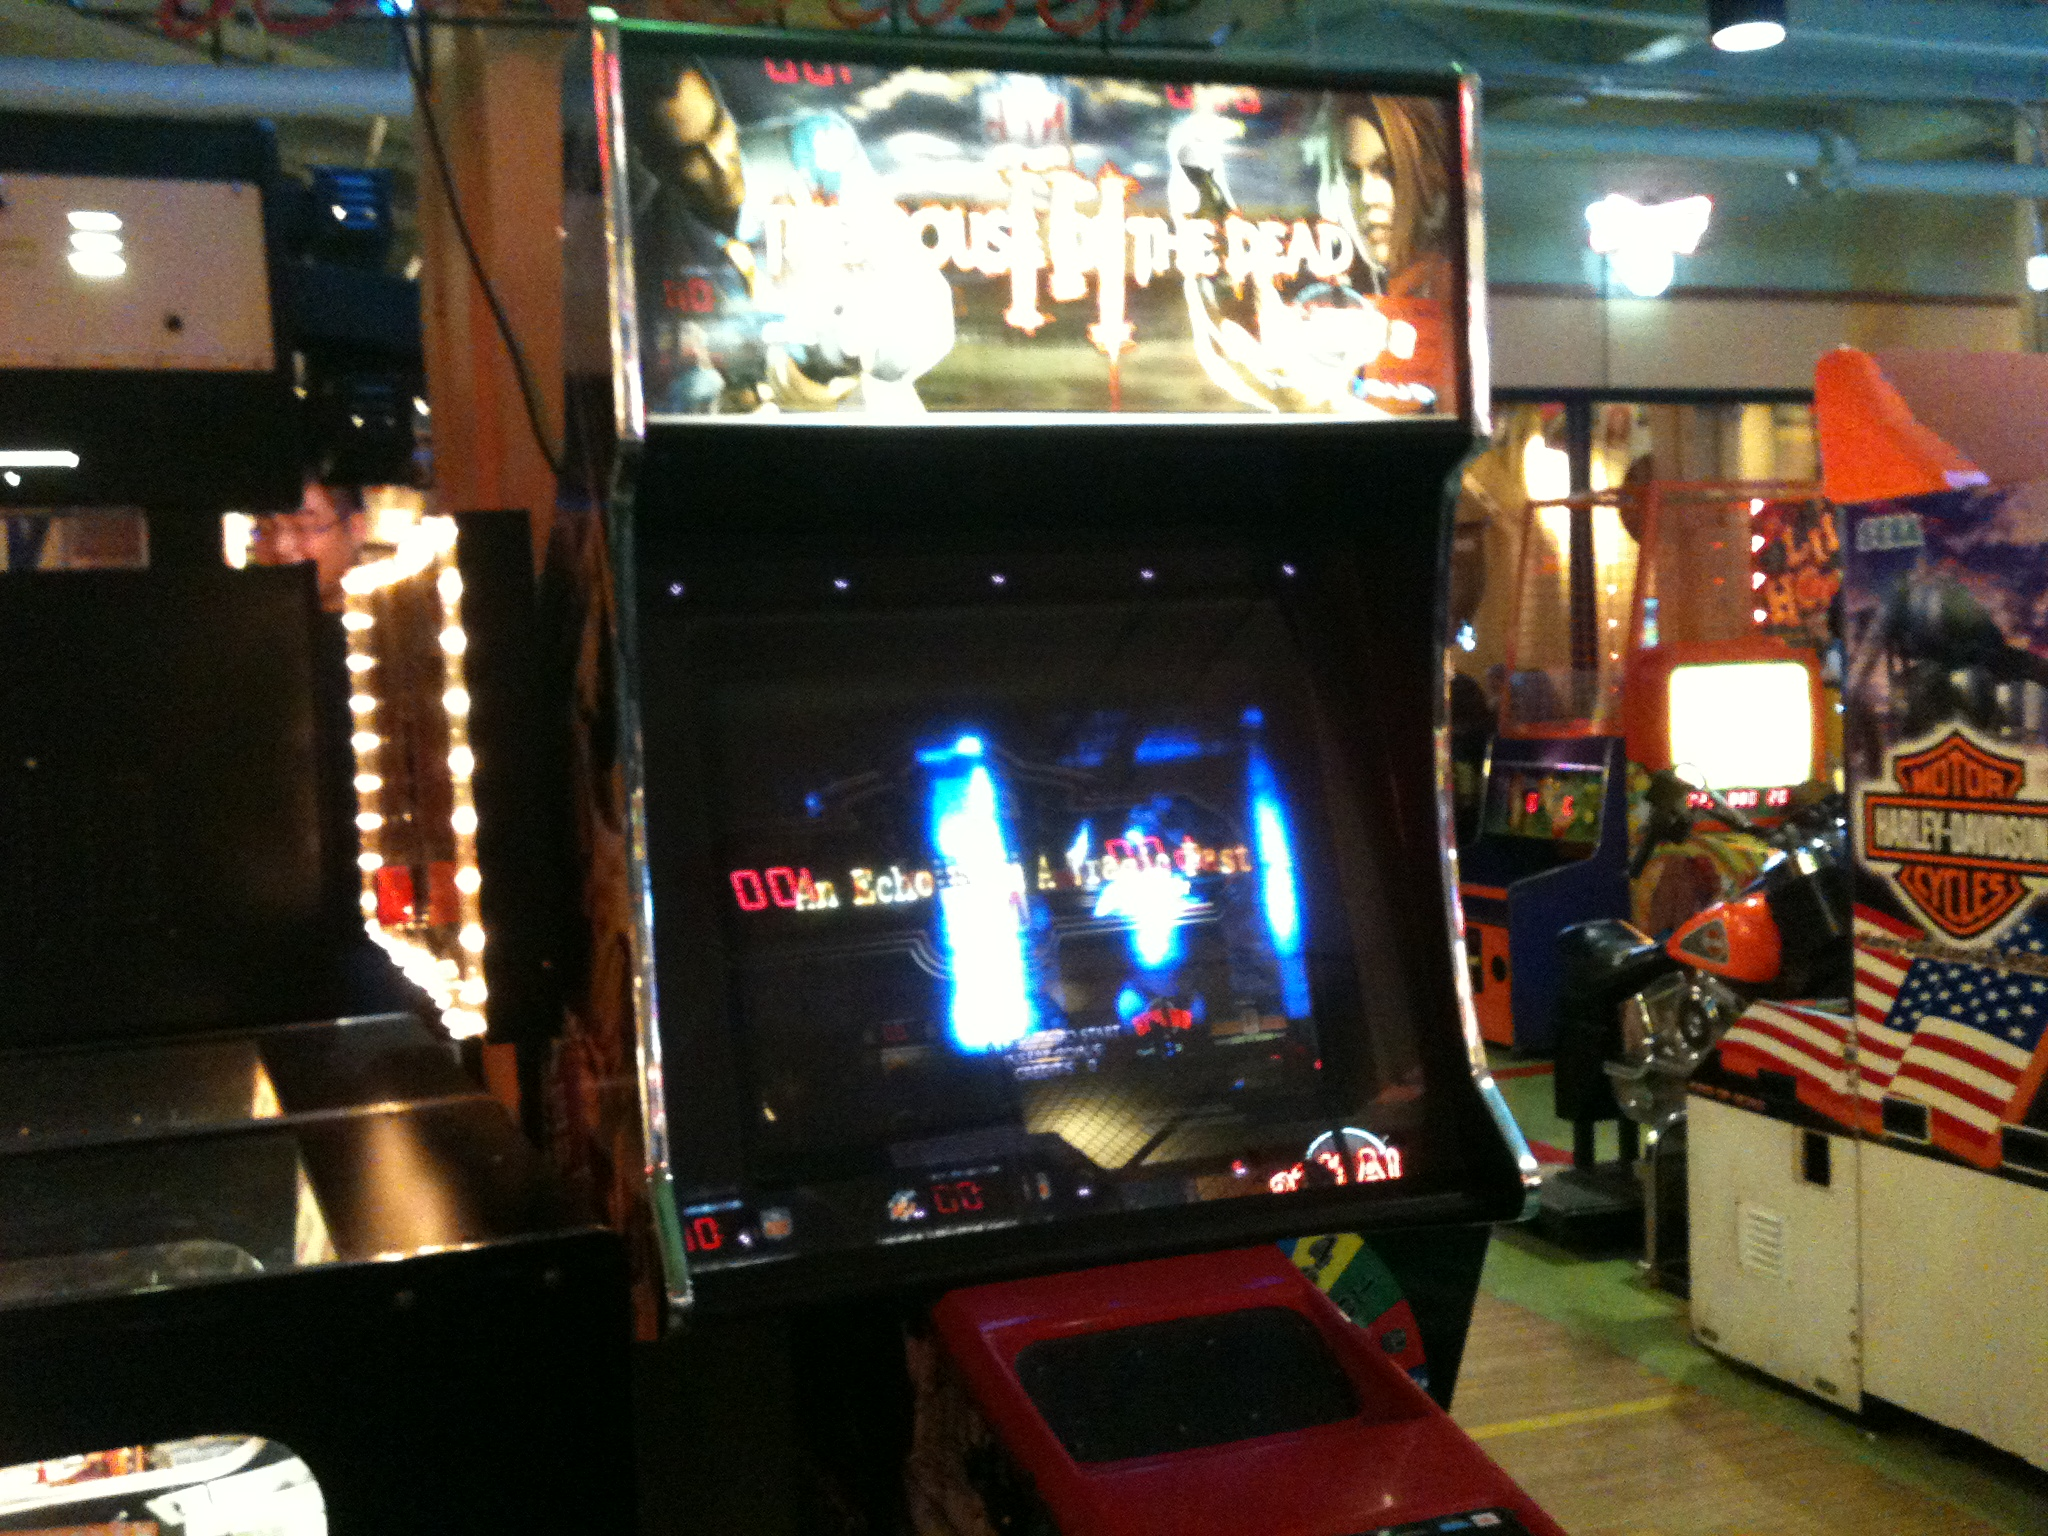 Players Arcade and Sports Bar - The House of the Dead III